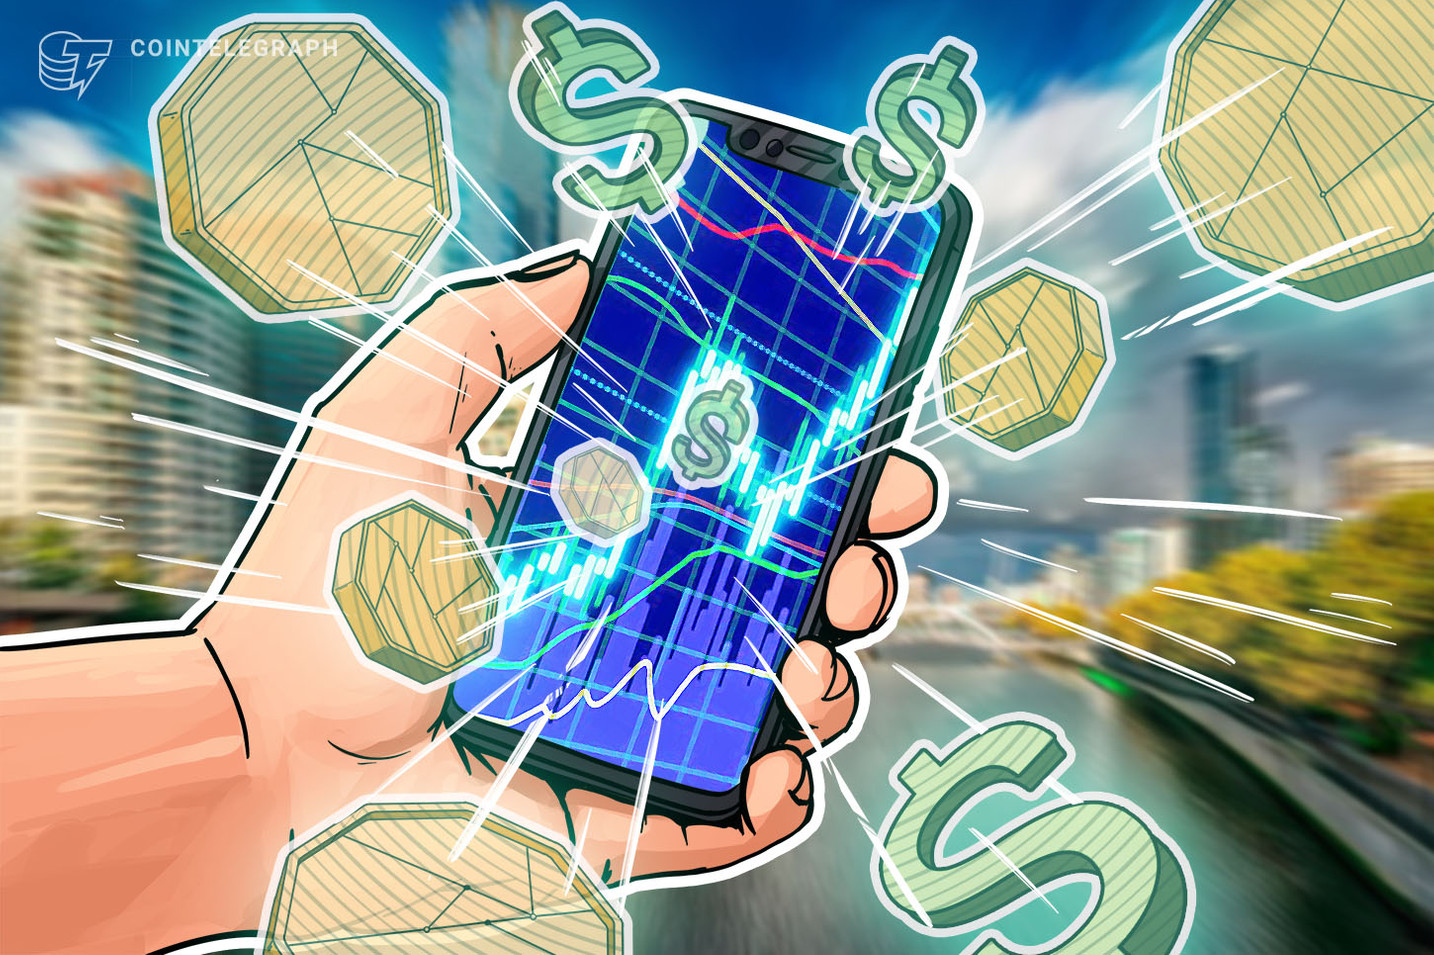 Coincheck Owner Mulls Addition of Crypto to Its Retail Offerings